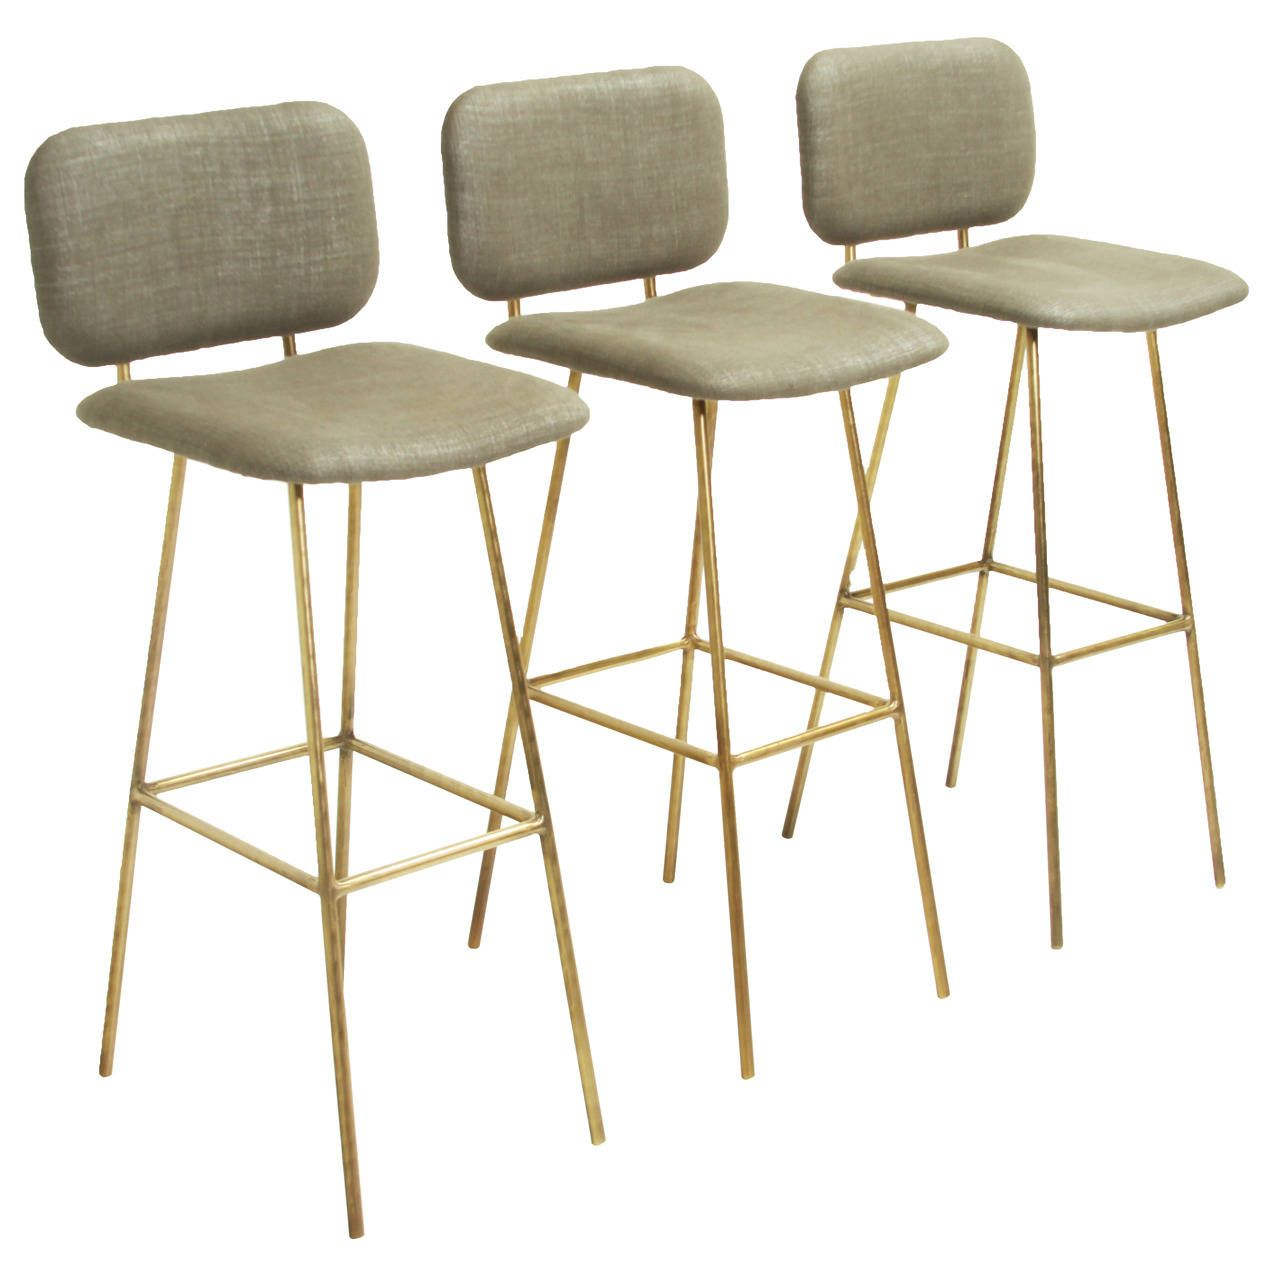 petra stool in brass  petra bar stool and stools - petra stool in brass